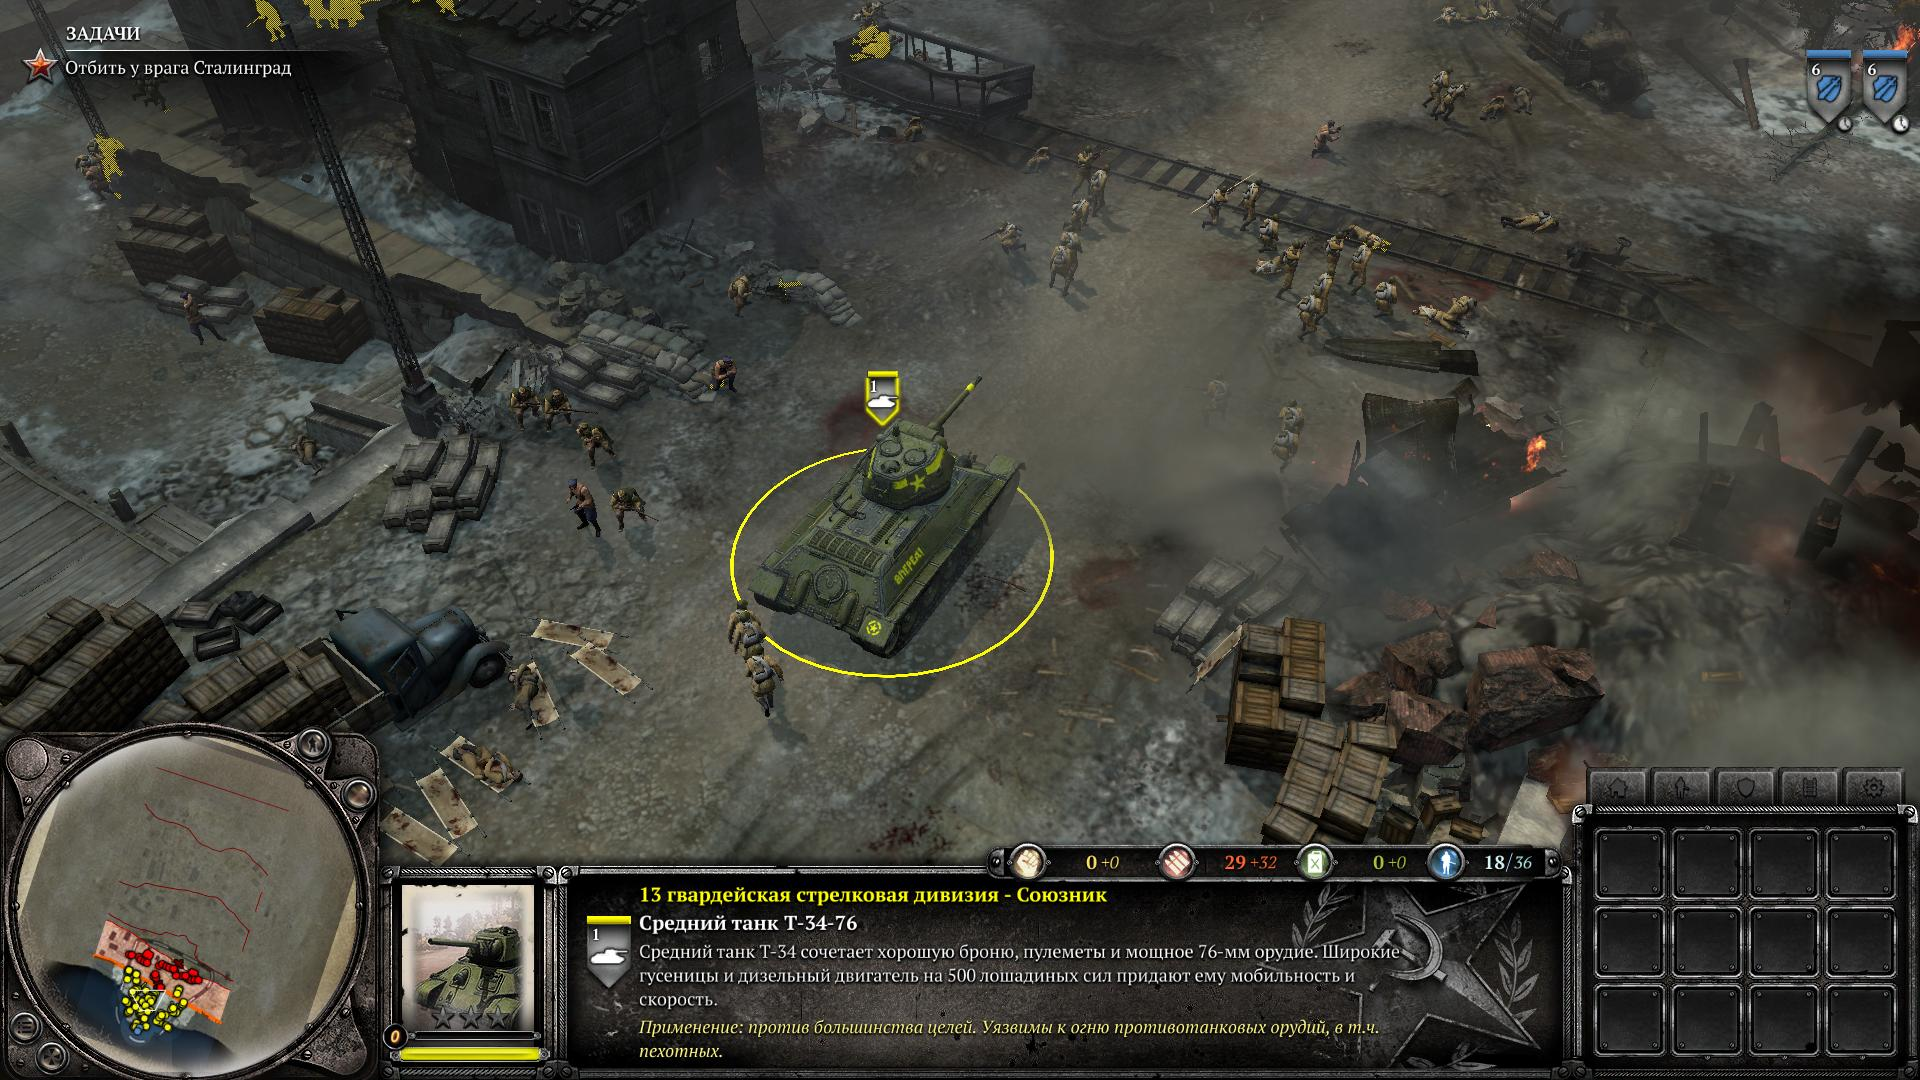 Company of Heroes 2: Master Collection [v 4.0.0.21699 + DLC's] (2014) PC   RePack by R.G. Механики - Скриншот 2